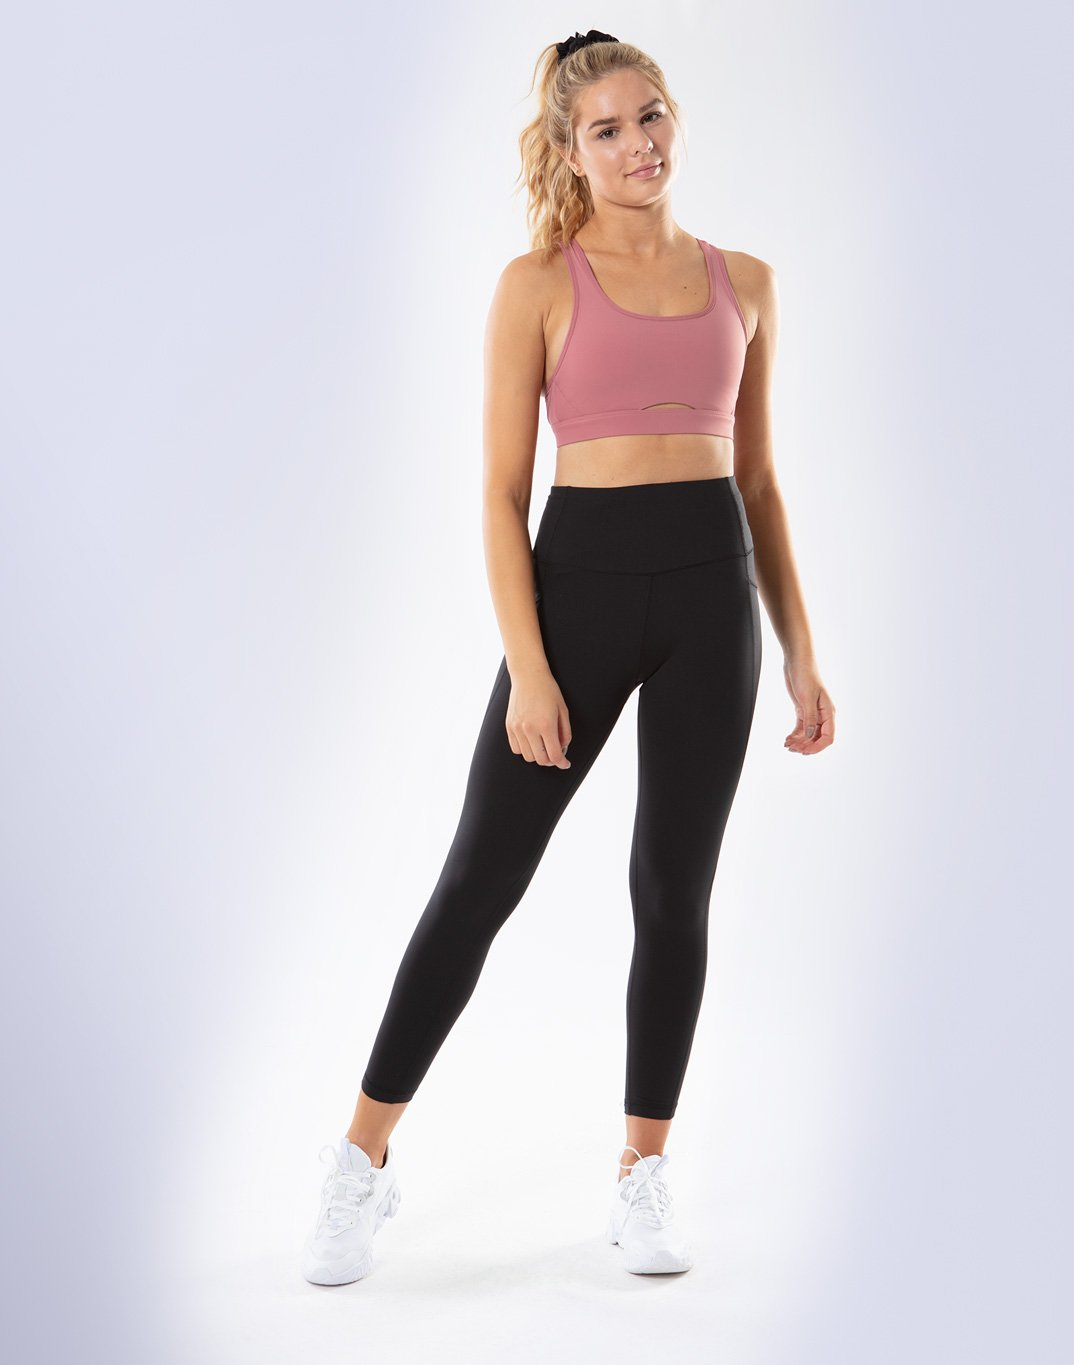 Gym Plus Coffee Leggings All-In 2.0 in Black Designed in Ireland